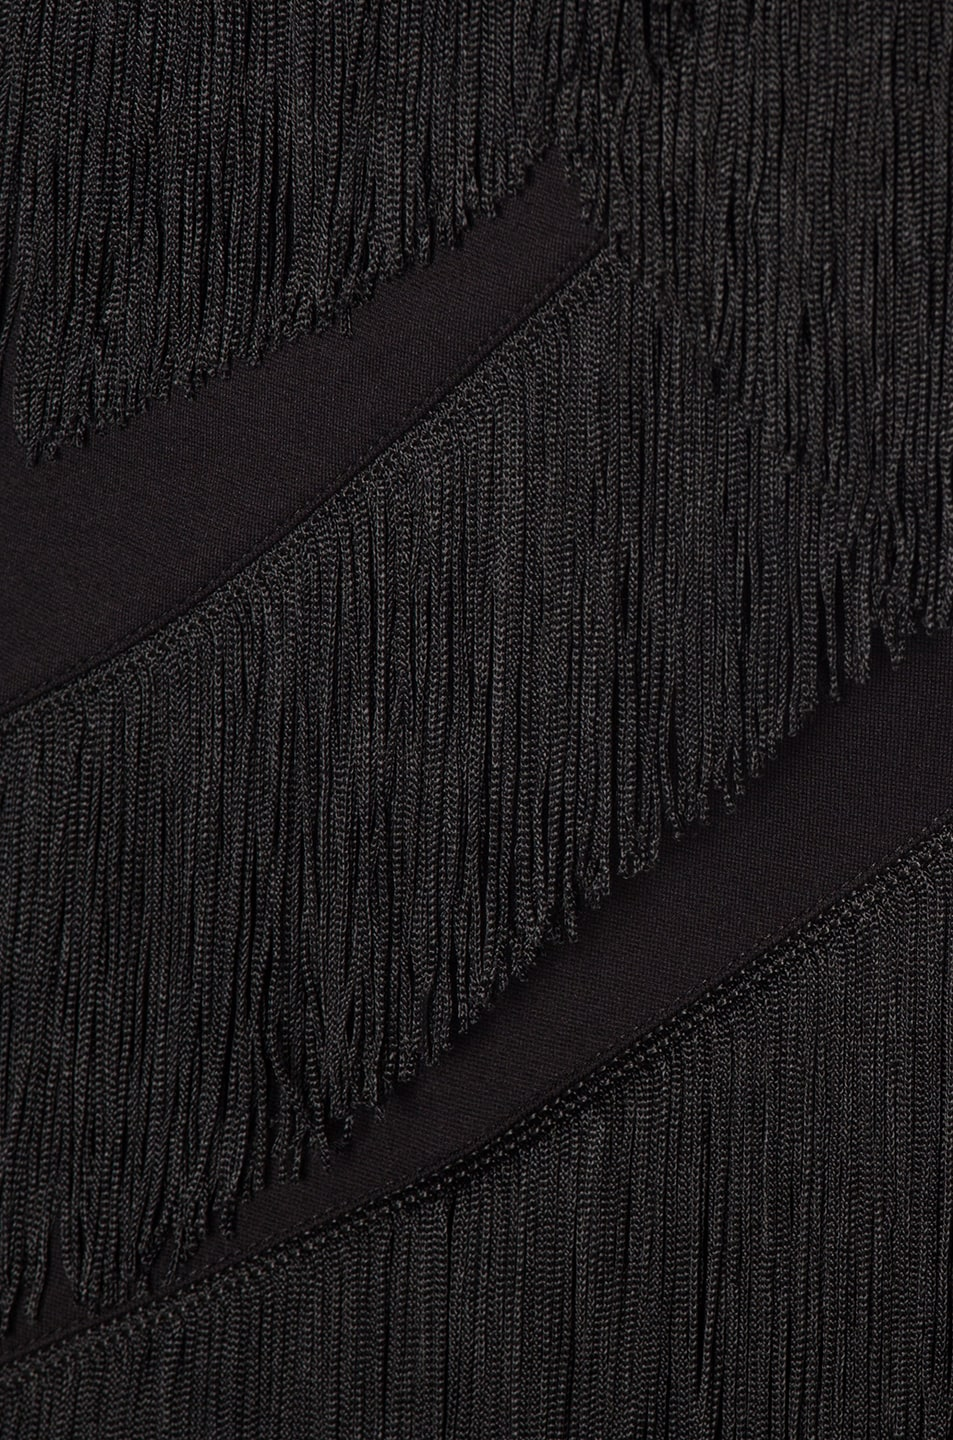 Image 5 of Y/Project Fringe Top in Black